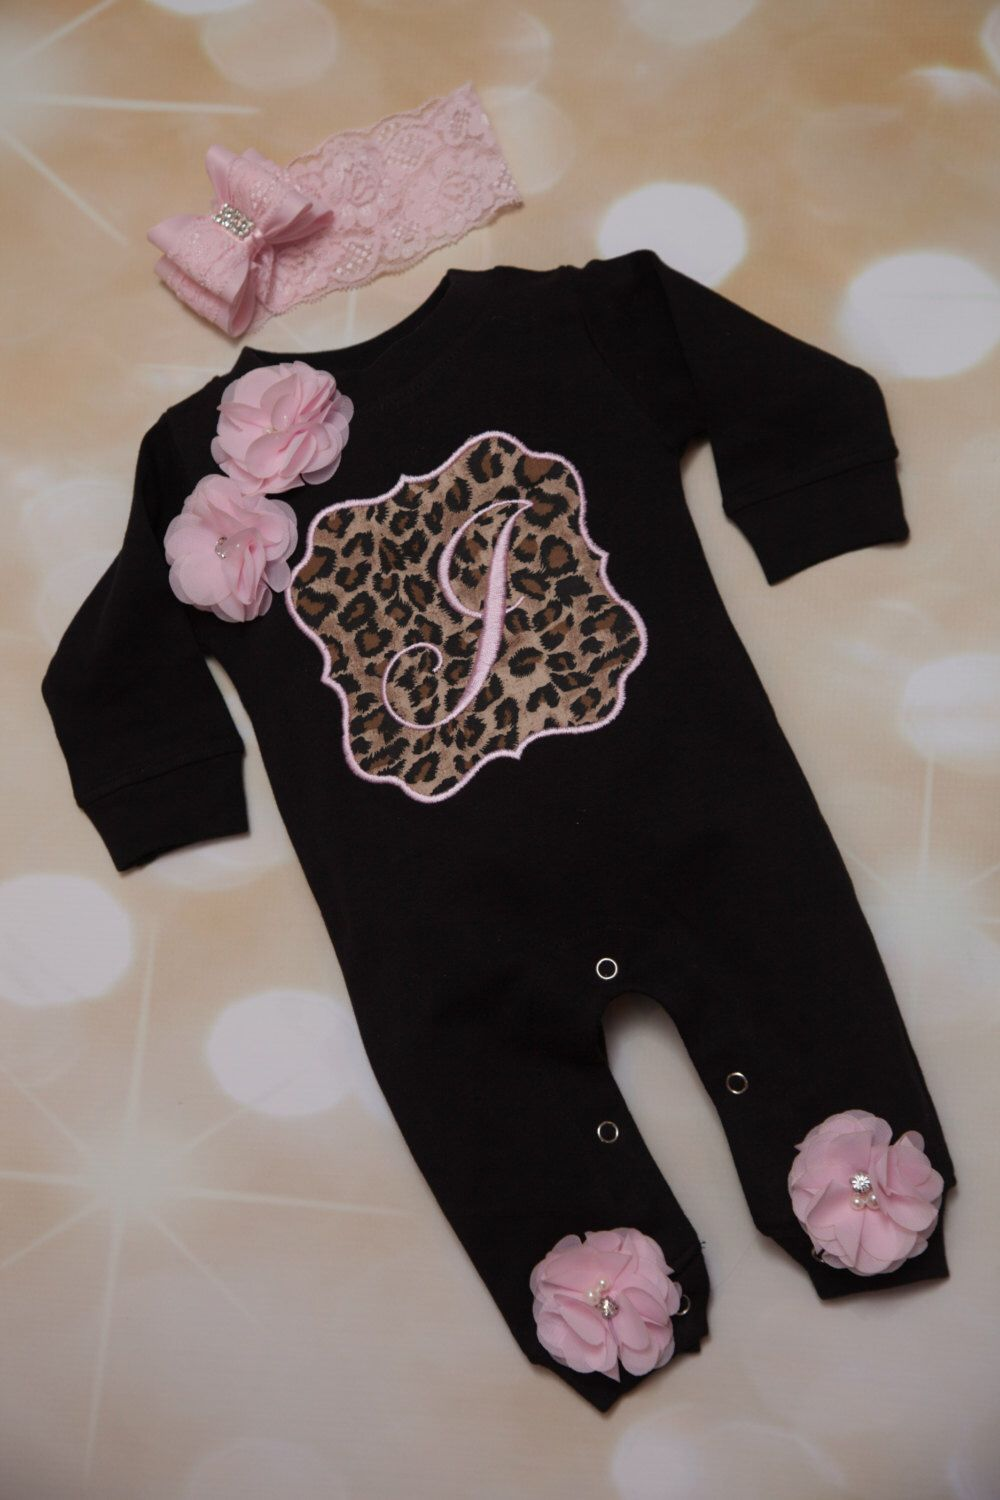 161109a399d Personalized Baby Girl Romper Set Black Embroidered Infant Romper Set with  Beautiful Leopard Frame and Matching